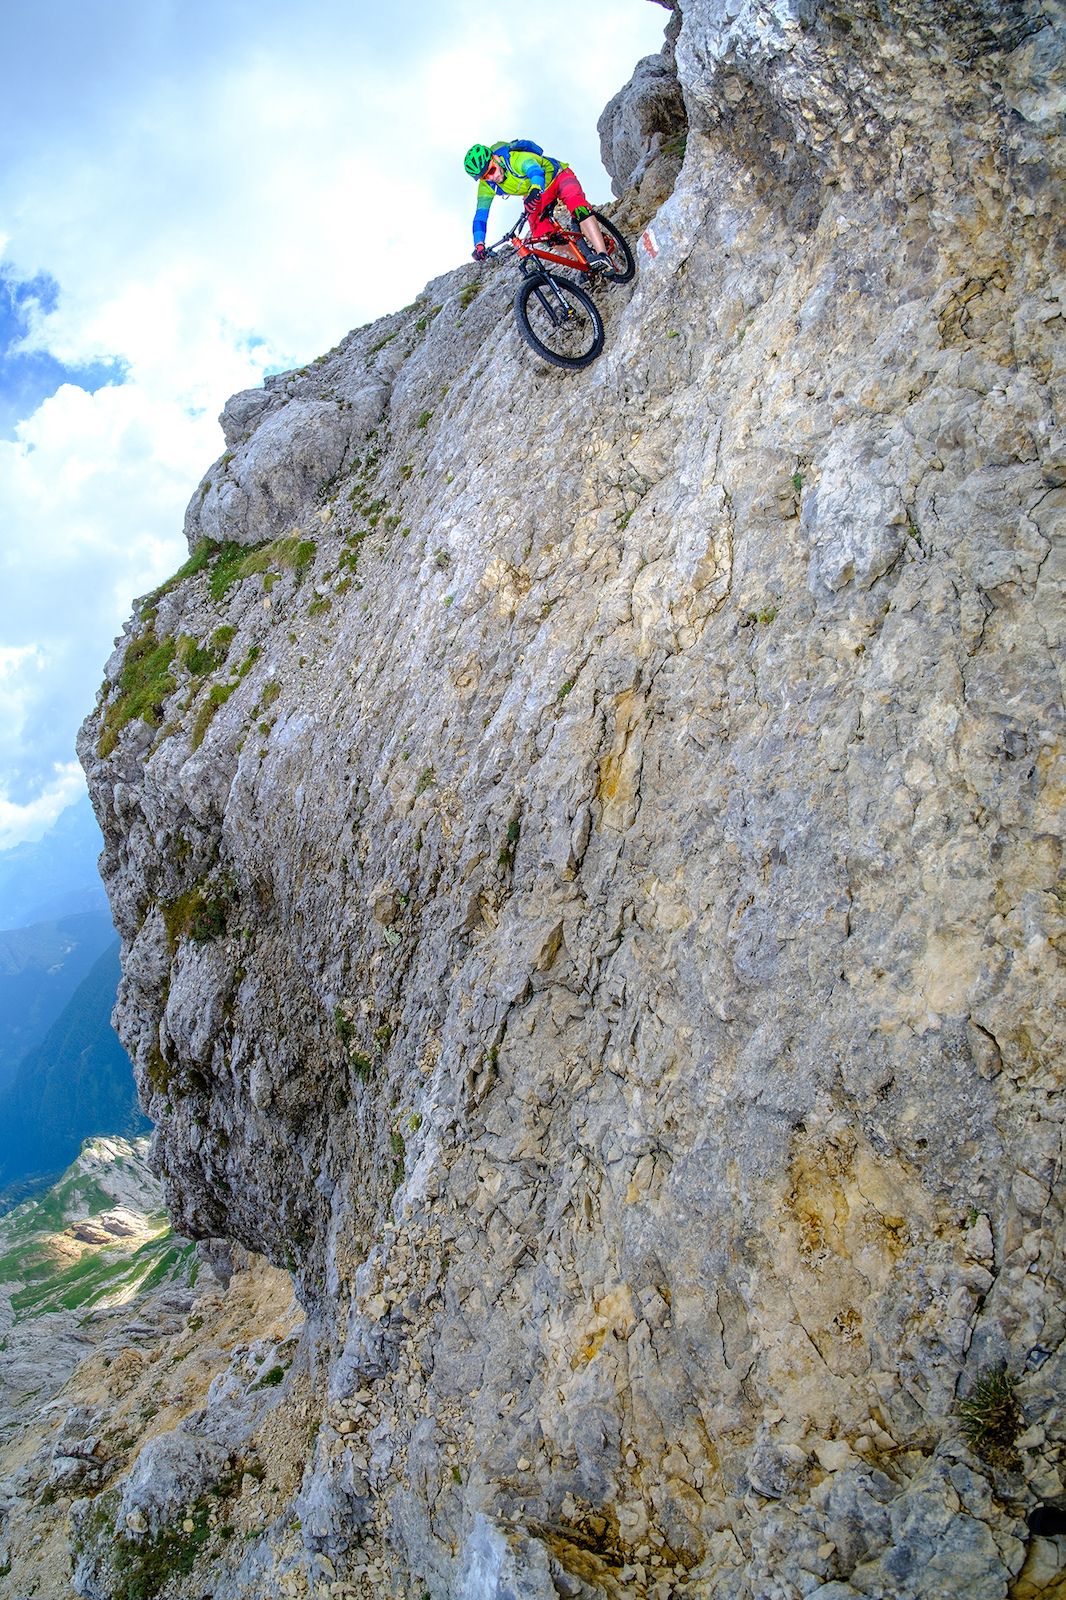 Steep riding in a no fall zone coming down from the Latemar sptize, Dolomites.